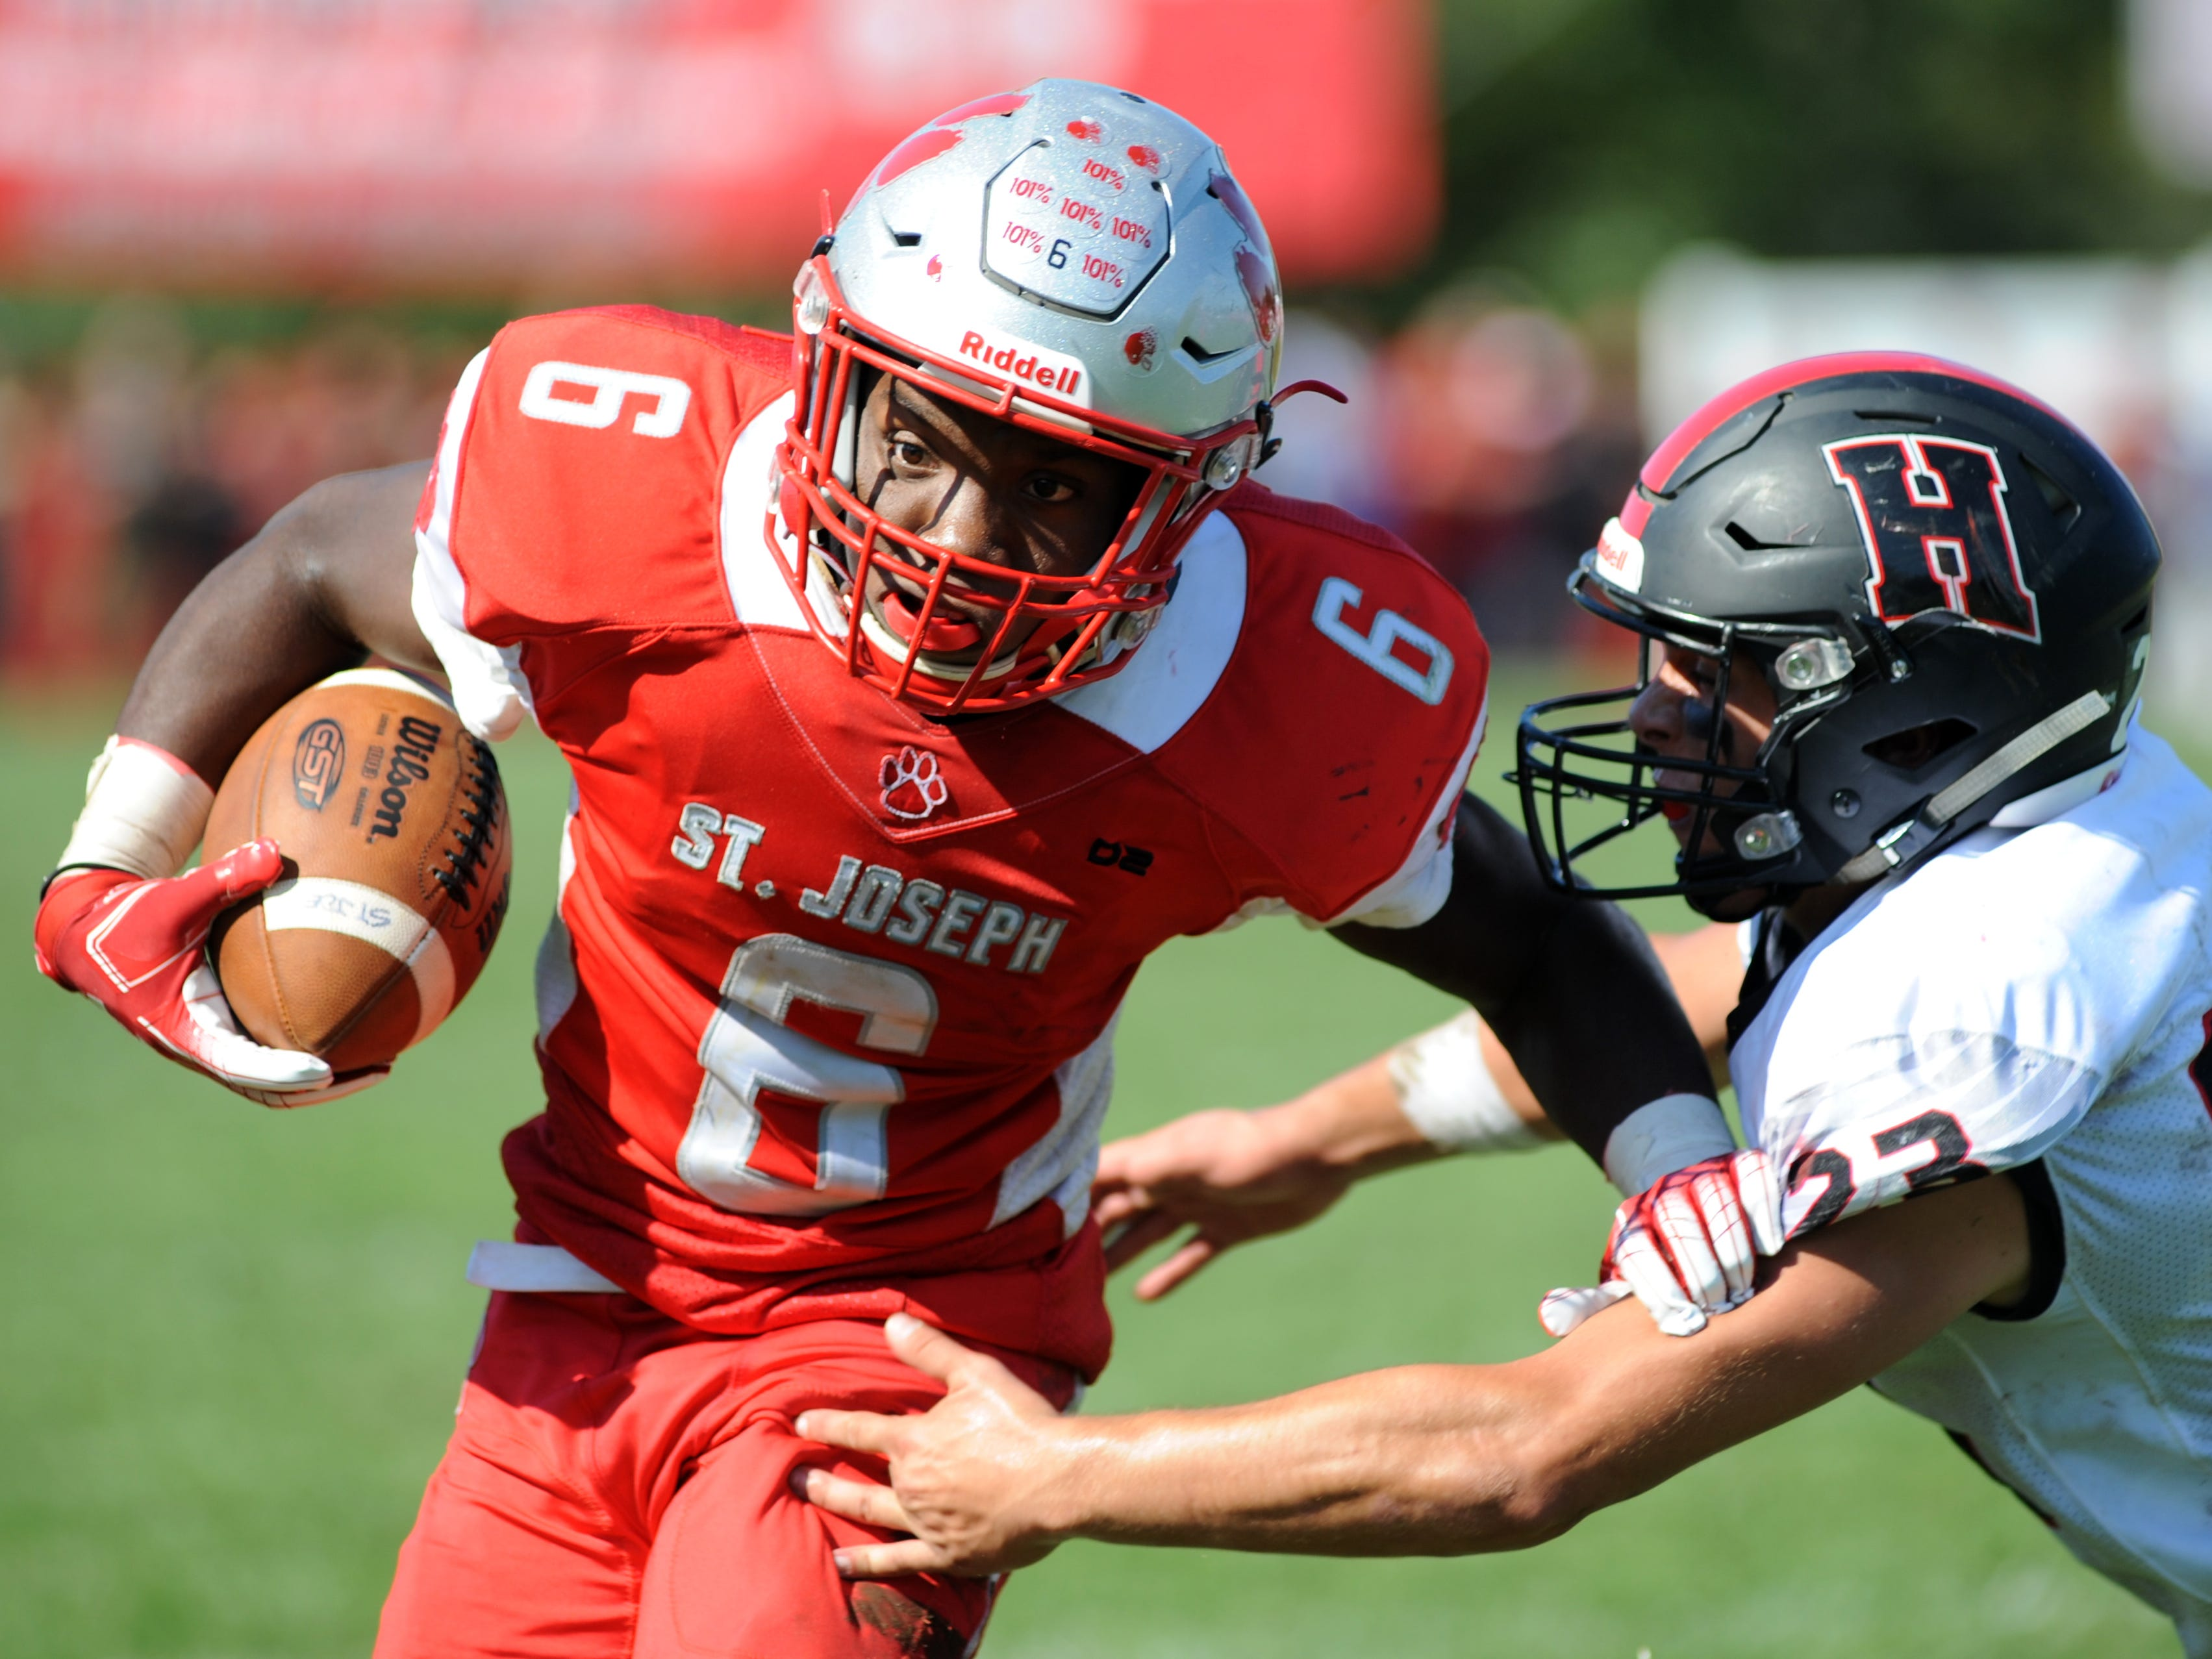 St. Joseph's Nate Johnson carries the ball during Saturday's game against Haddonfield, Sept. 29, 2018.